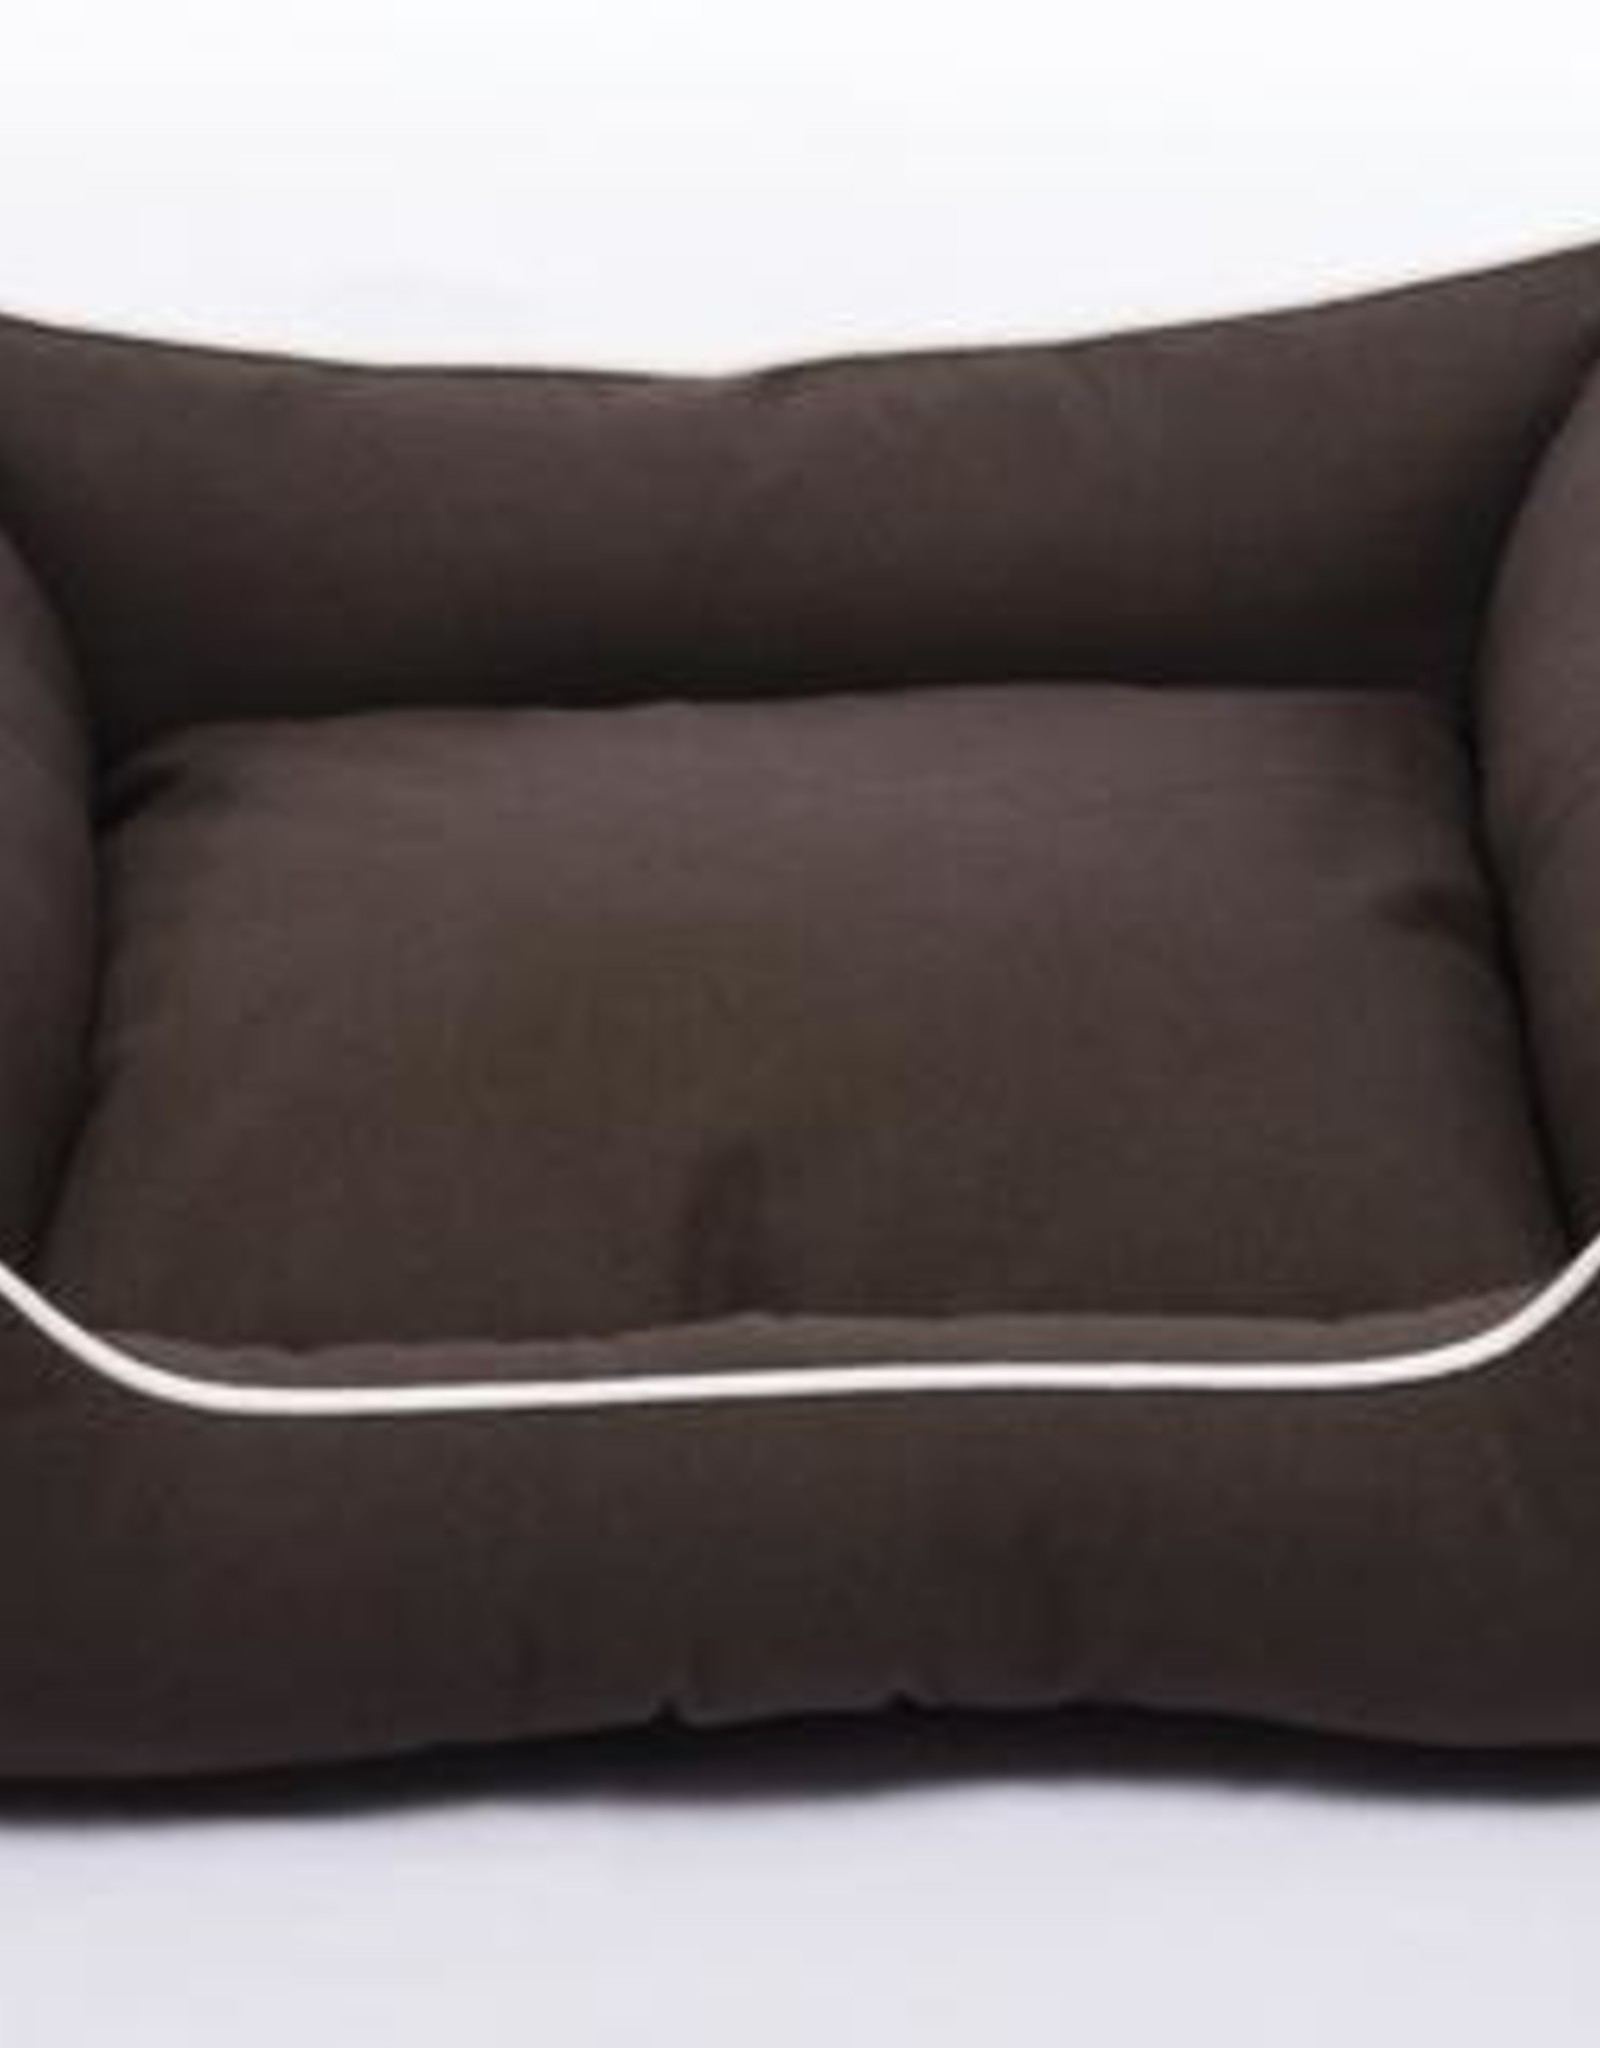 DOG GONE SMART BED CO. DGS LOUNGER BED ESPRESSO 19X15